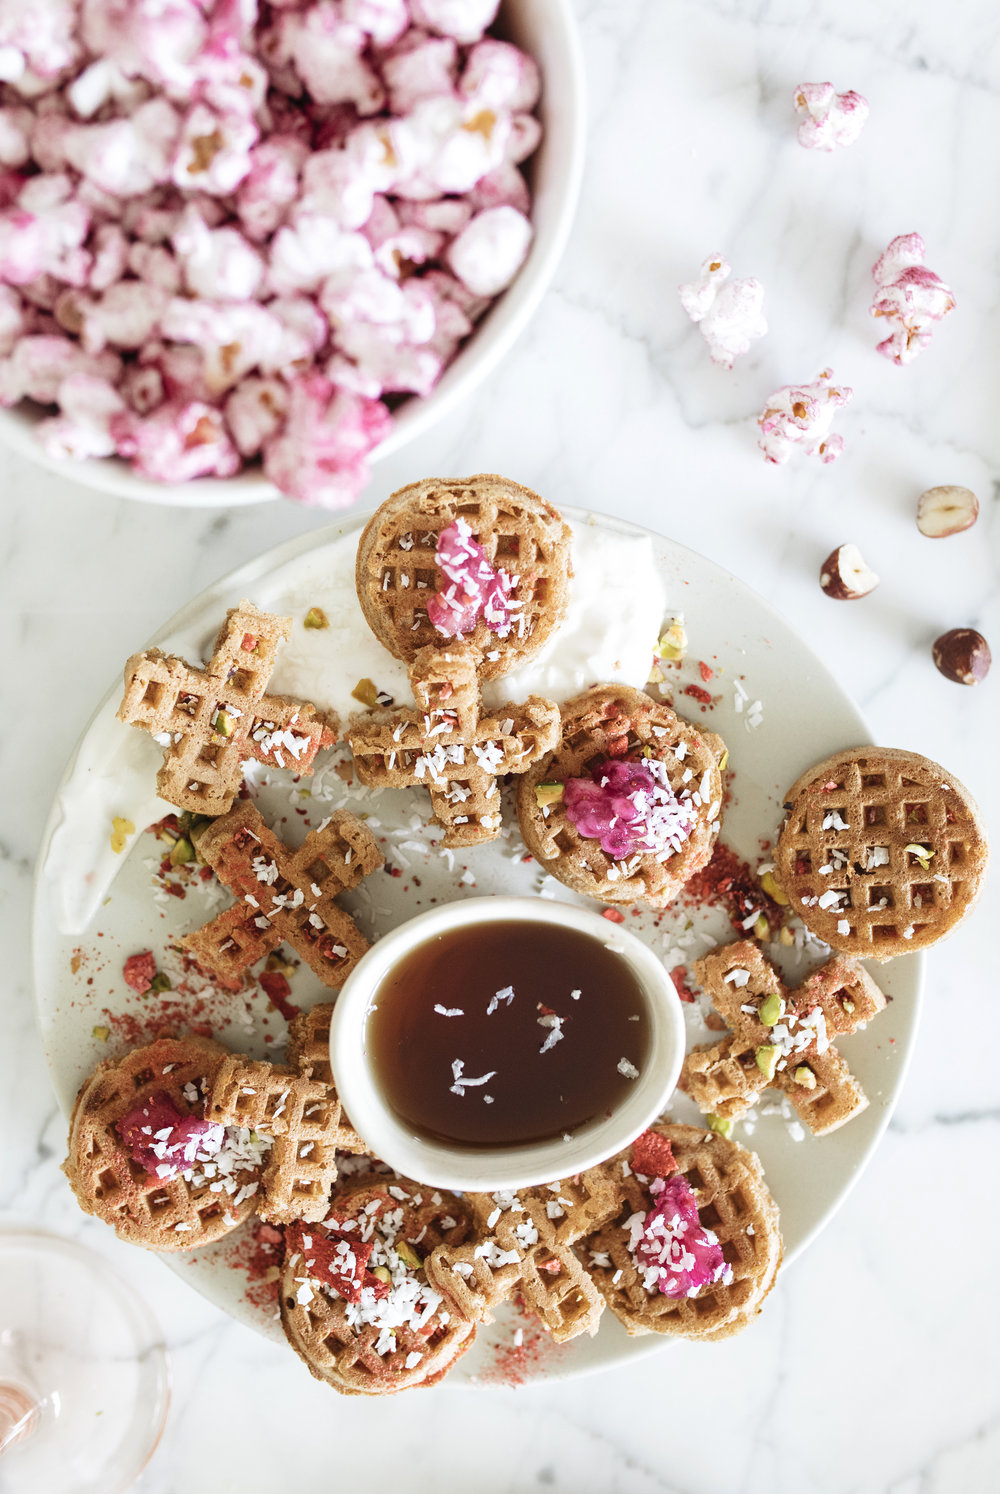 Waffles for a party! Mini waffles are one sweet and savory snack for galentines day brunch